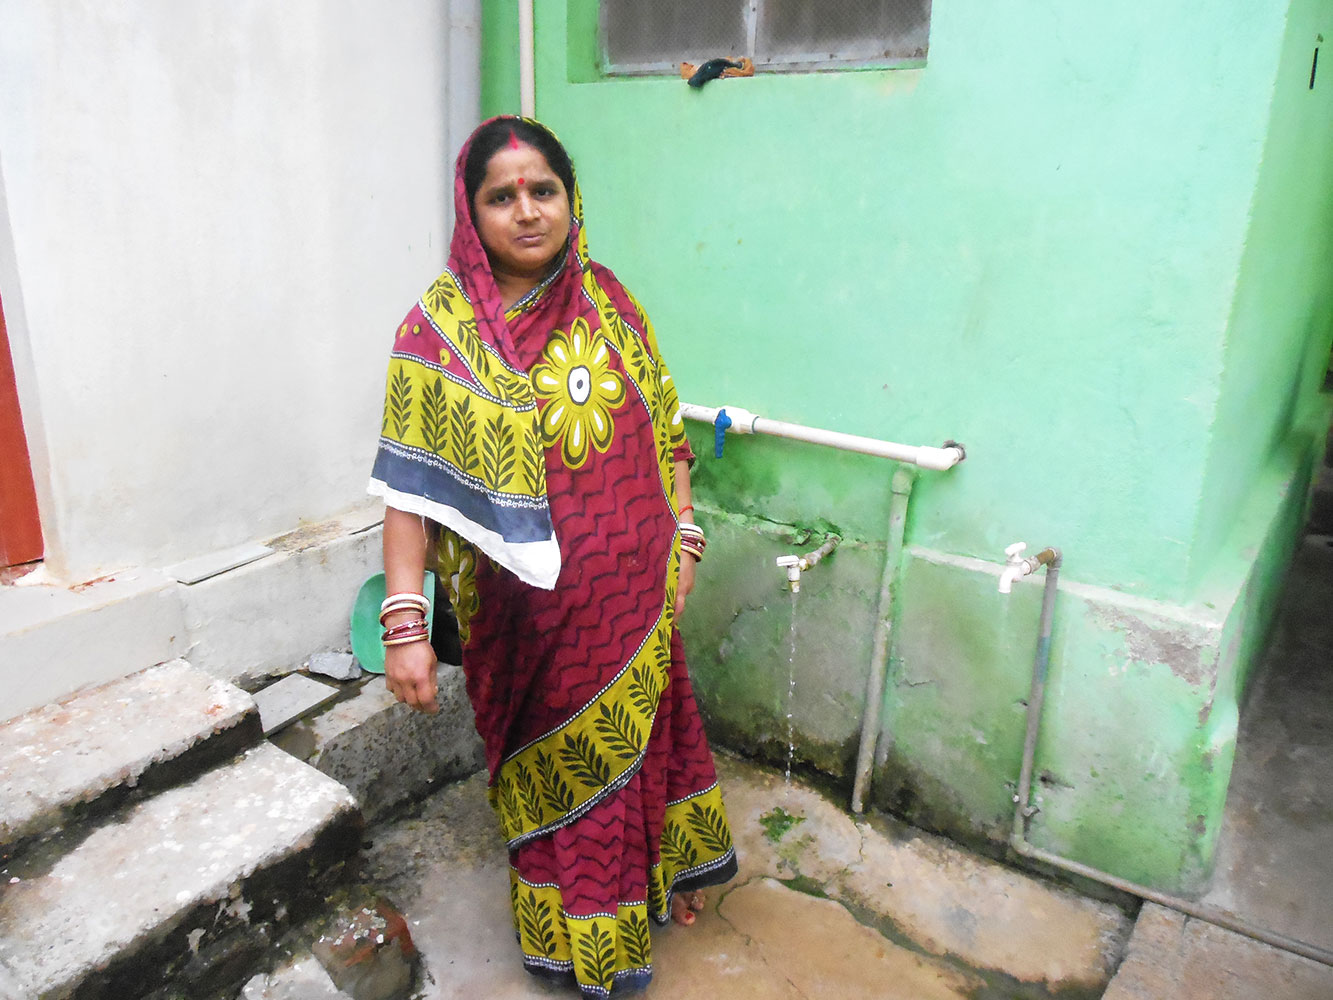 Piped water & Toilet to rural houses…. Living with dignity